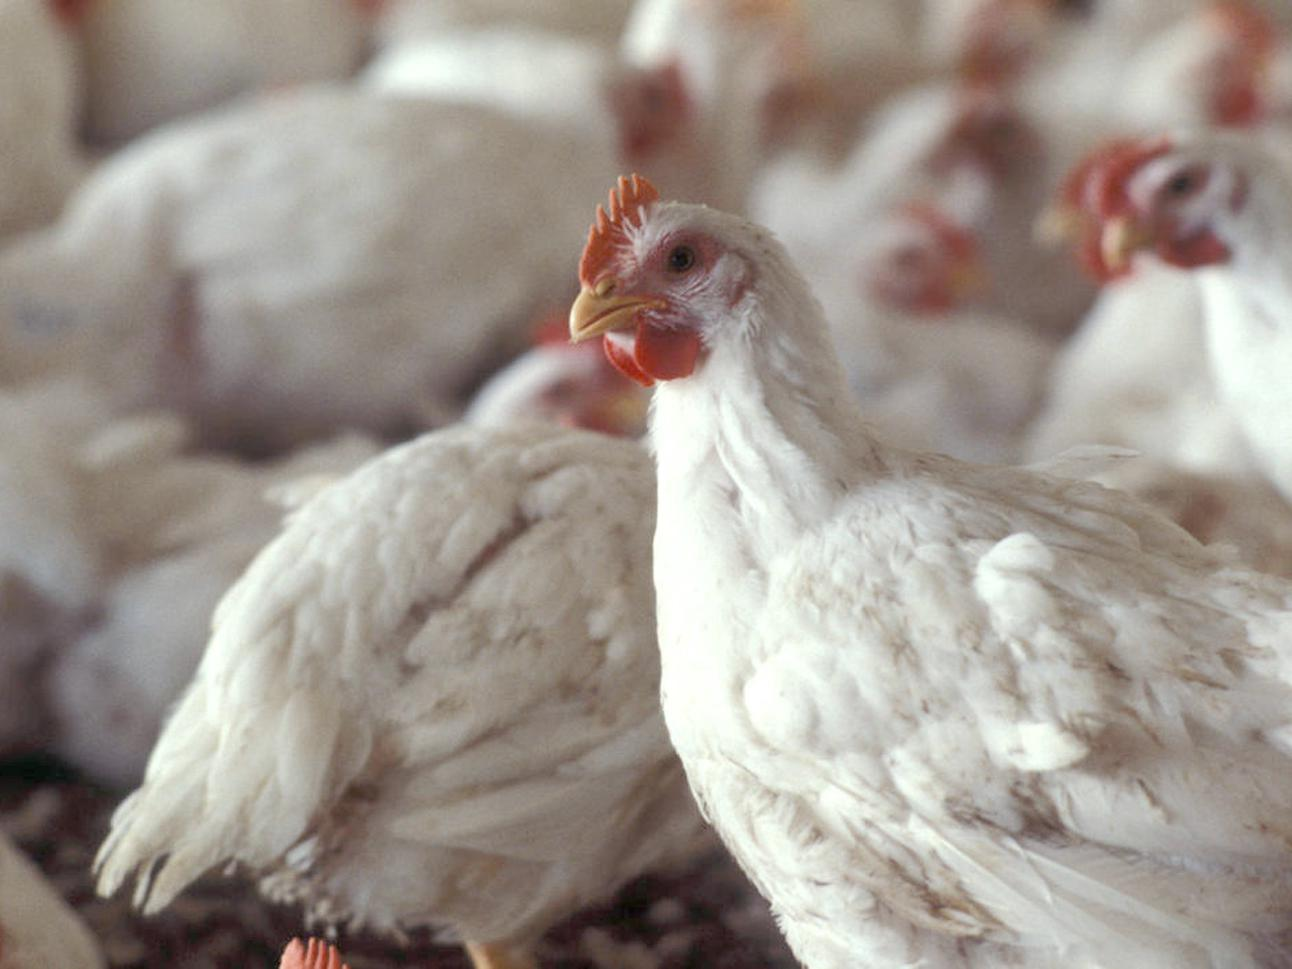 Poultry remains Mississippi's largest agricultural commodity, producing 10 percent of the nation's poultry supply. (File Photo)